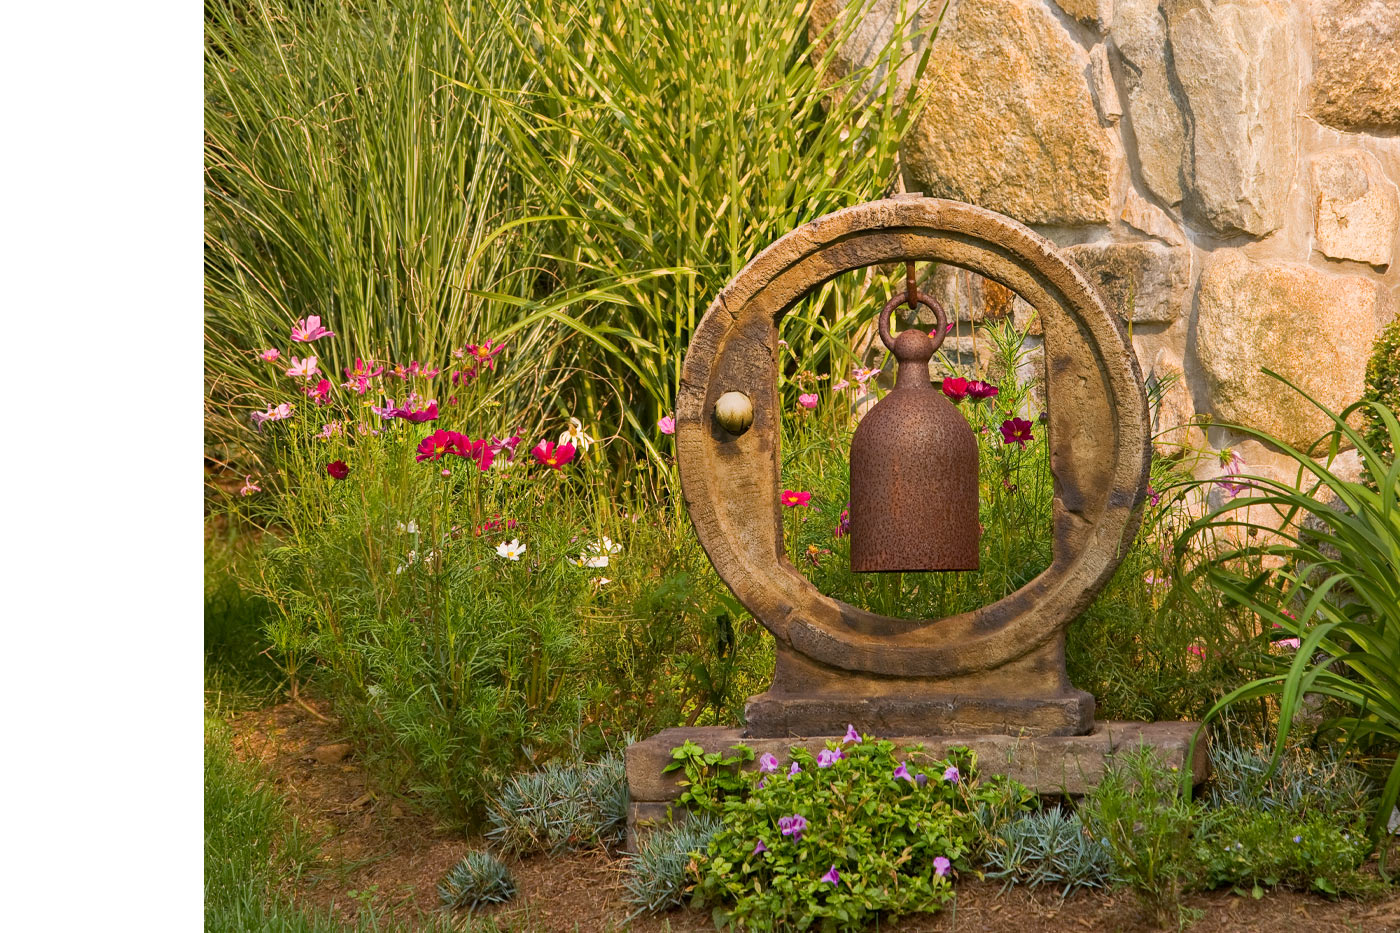 Garden Ornaments - New Jersey Landscaping